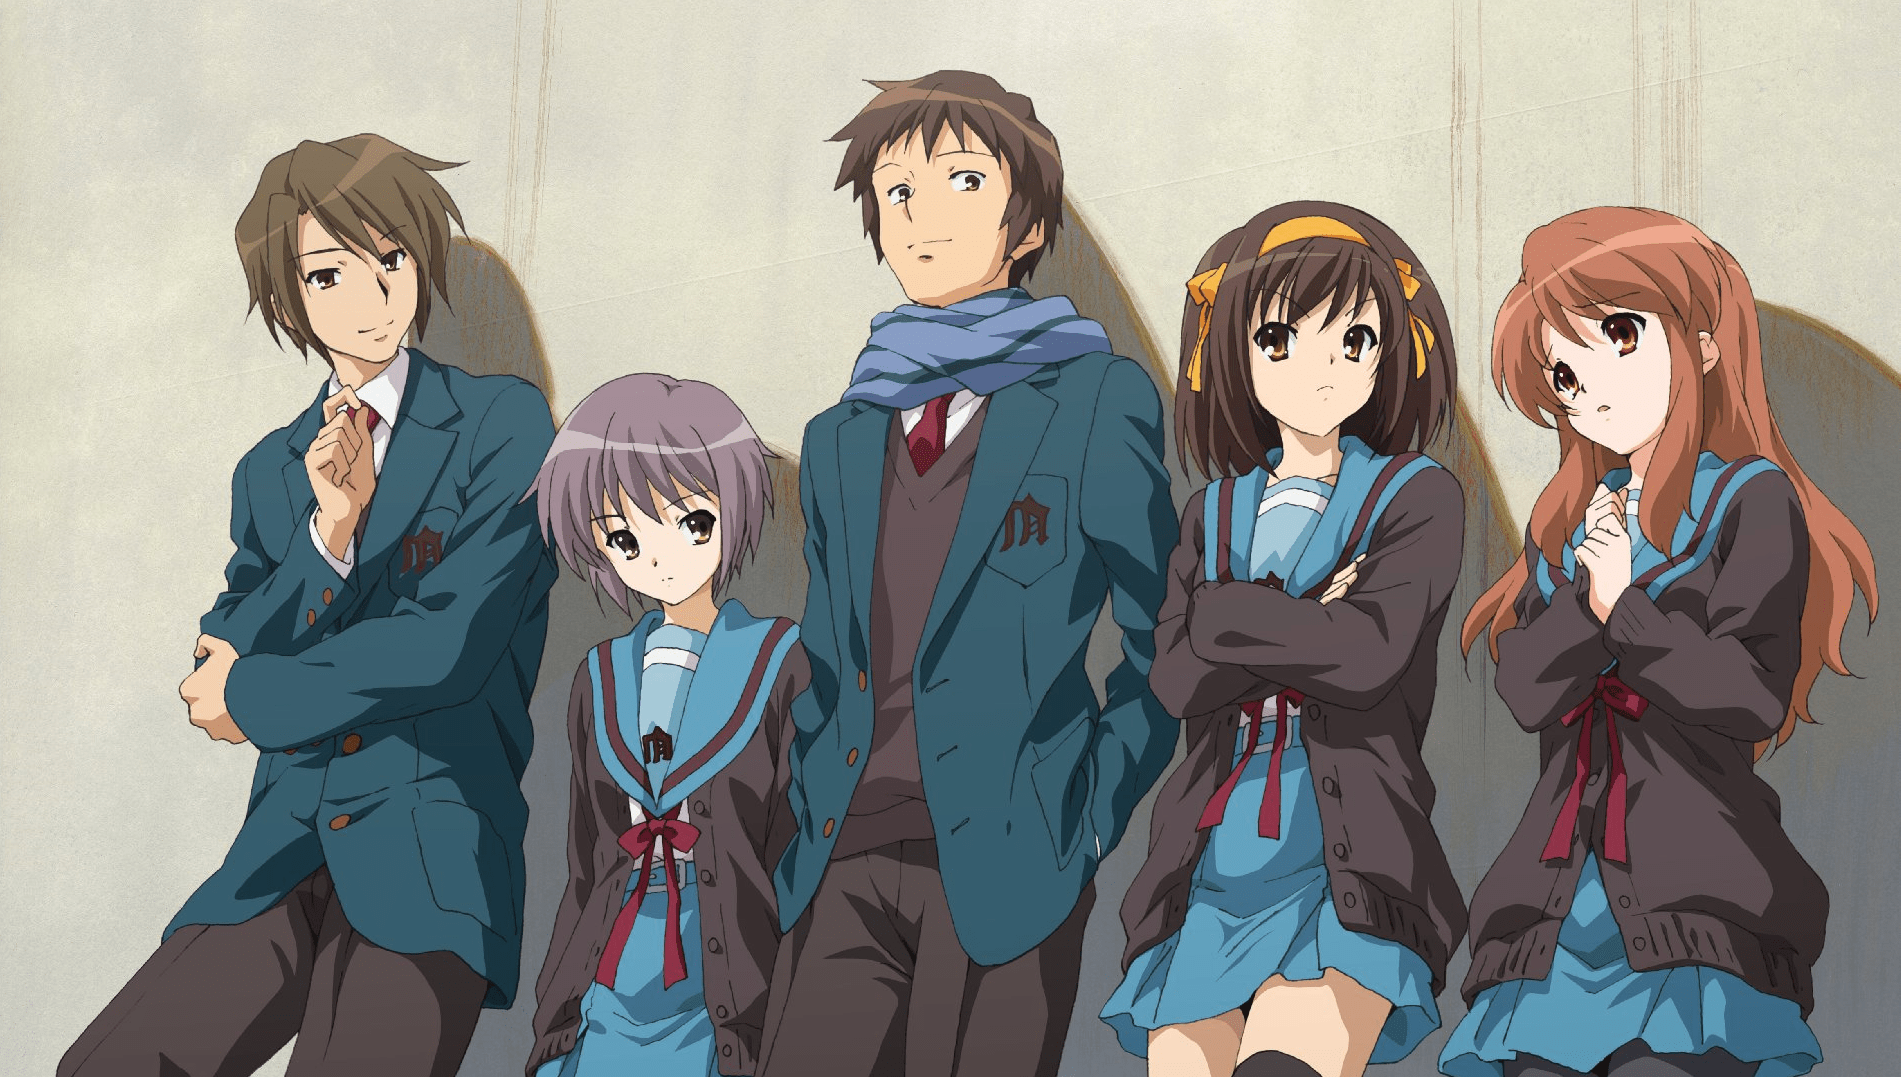 Haruhi Suzumiya and the S.O.S. Brigade